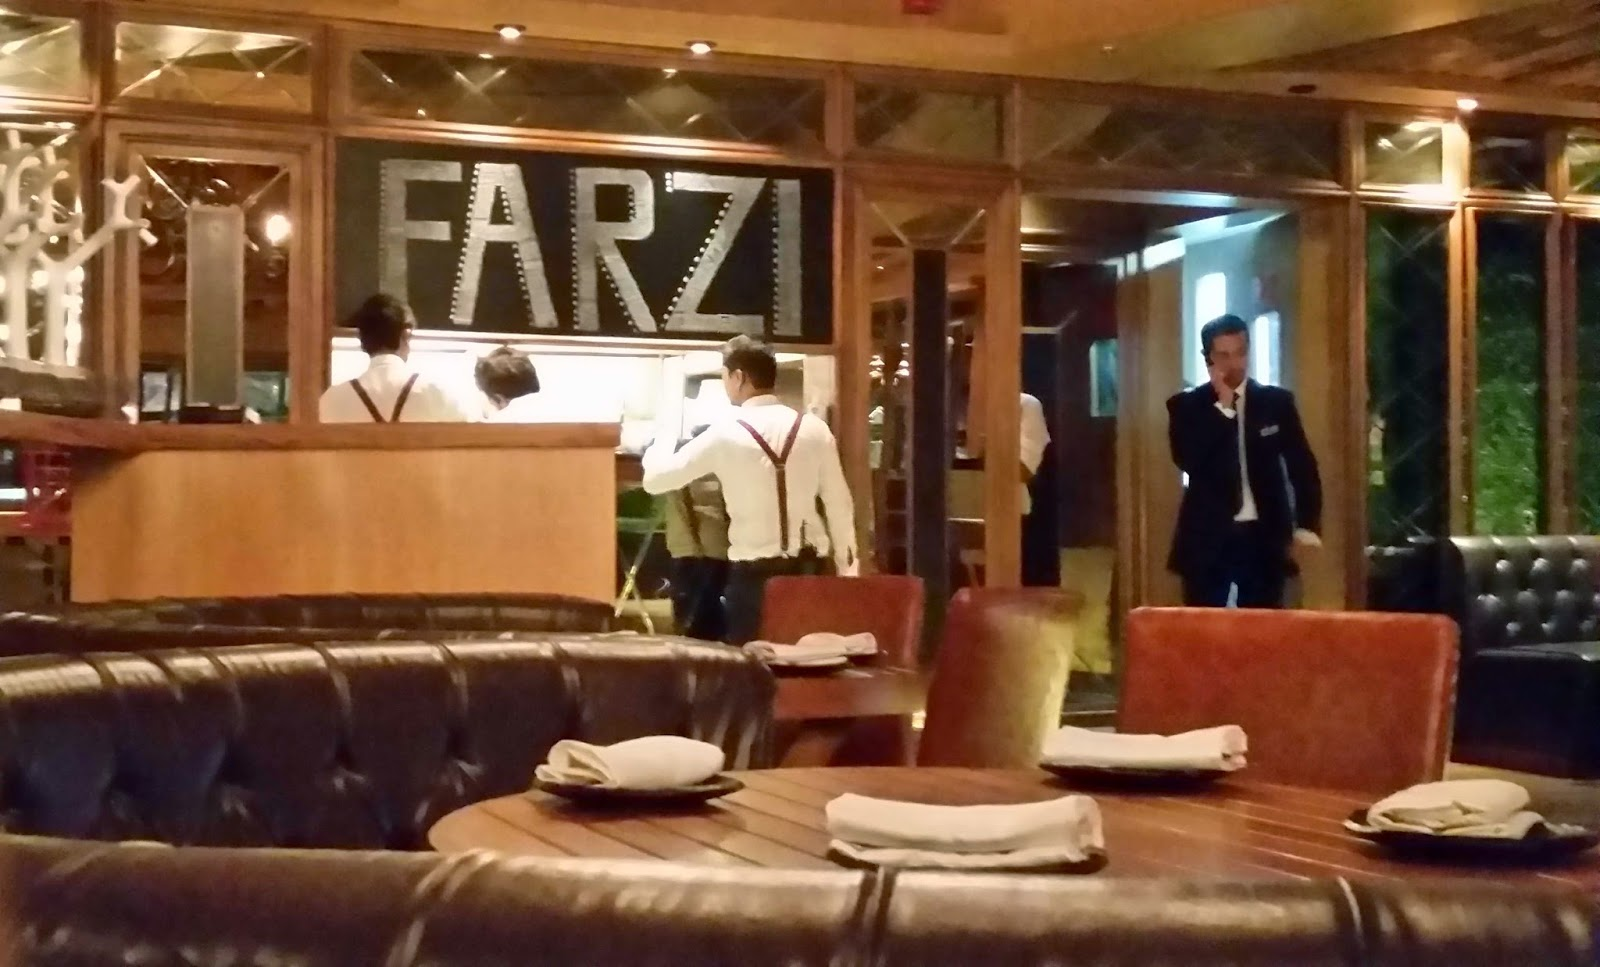 Farzi Cafe Interiors